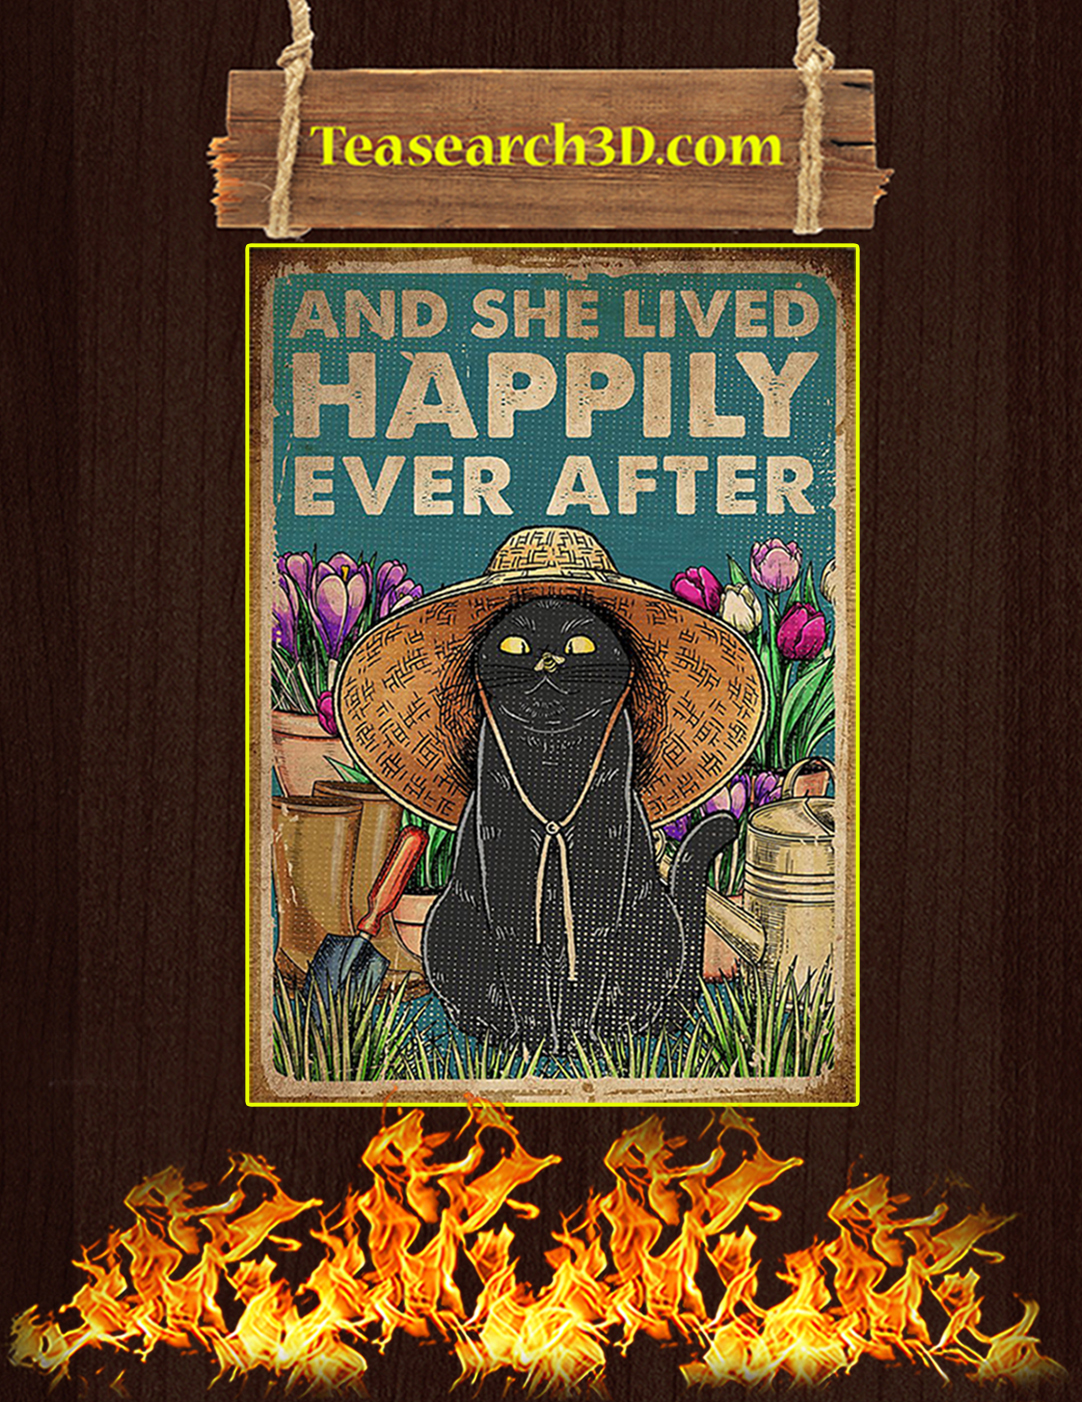 Cat gardening and she lived happily ever after poster A2